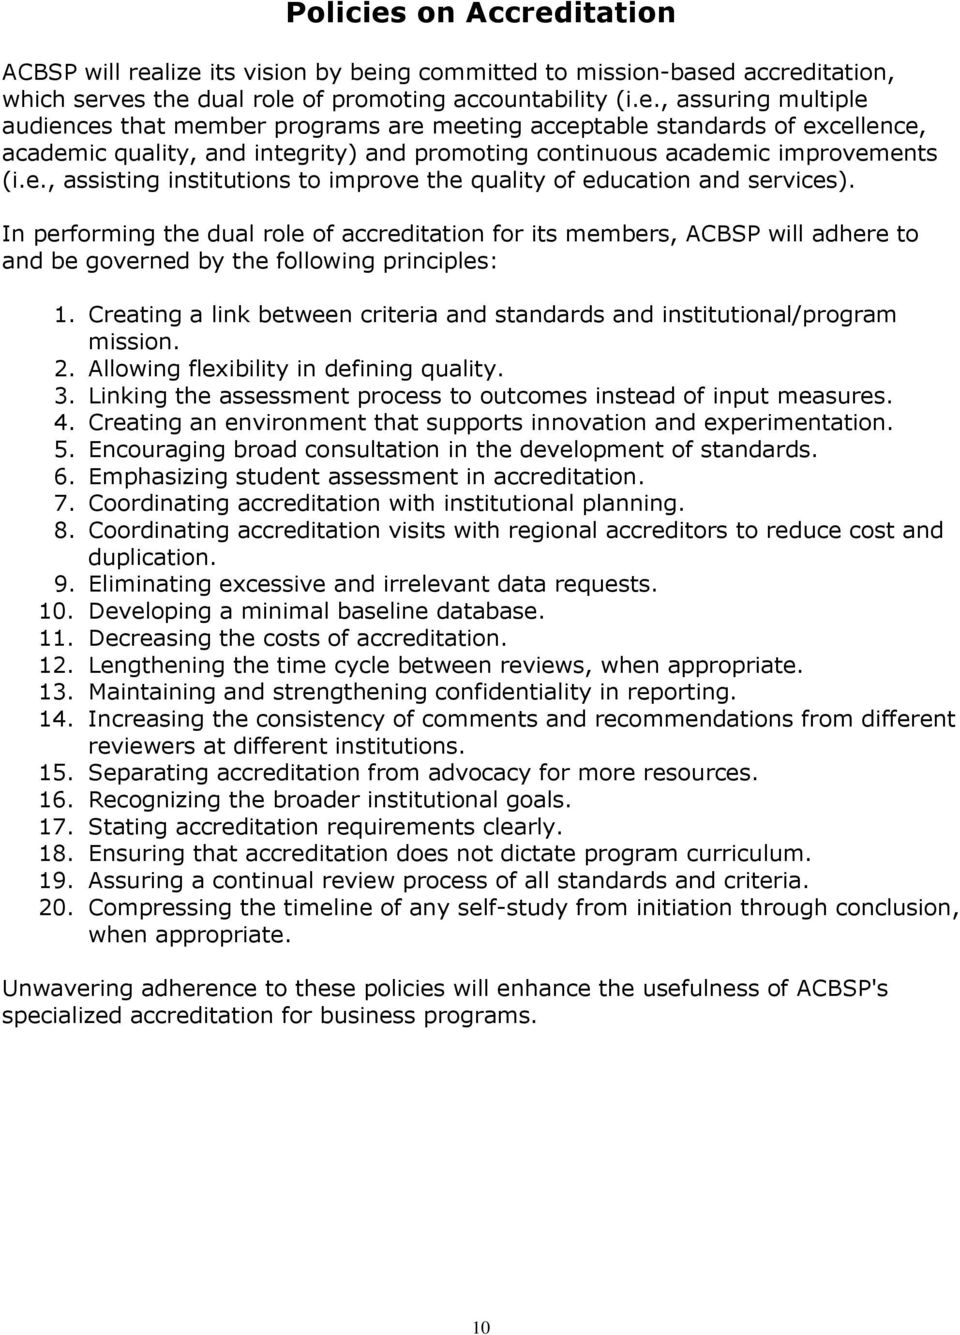 In performing the dual role of accreditation for its members, ACBSP will adhere to and be governed by the following principles: 1.